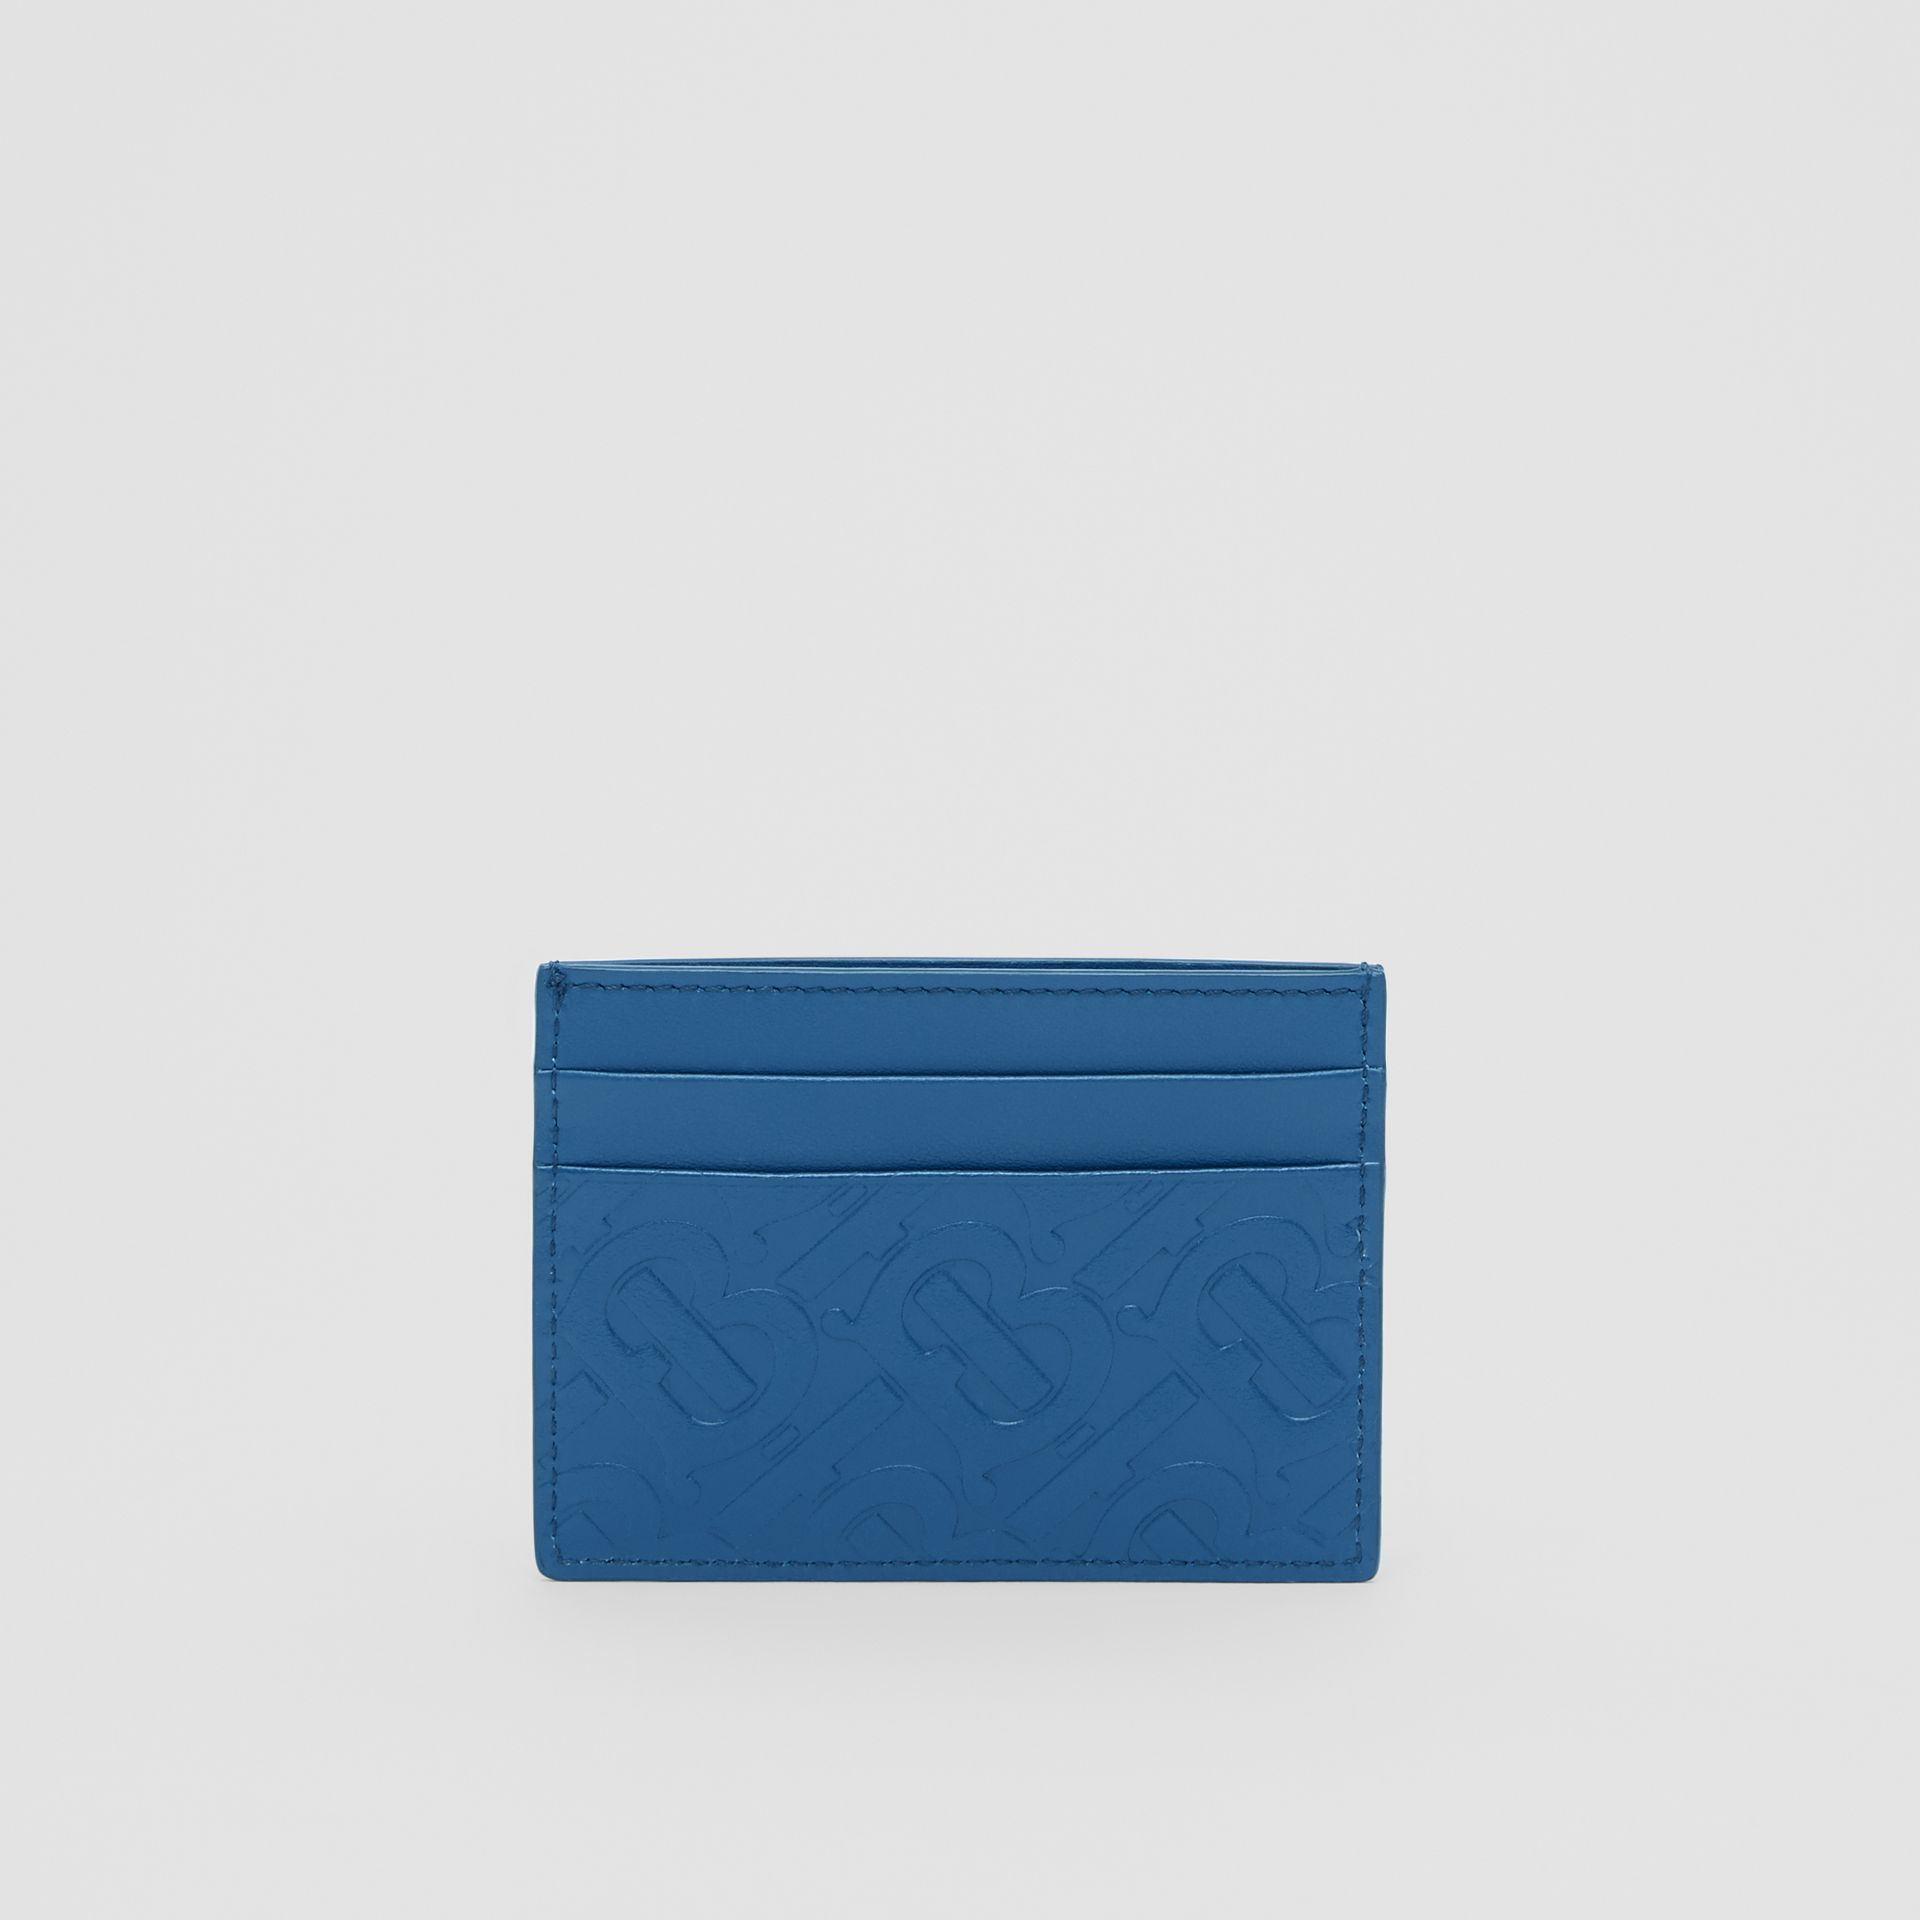 Monogram Leather Card Case in Pale Canvas Blue - Men | Burberry Hong Kong S.A.R - gallery image 4